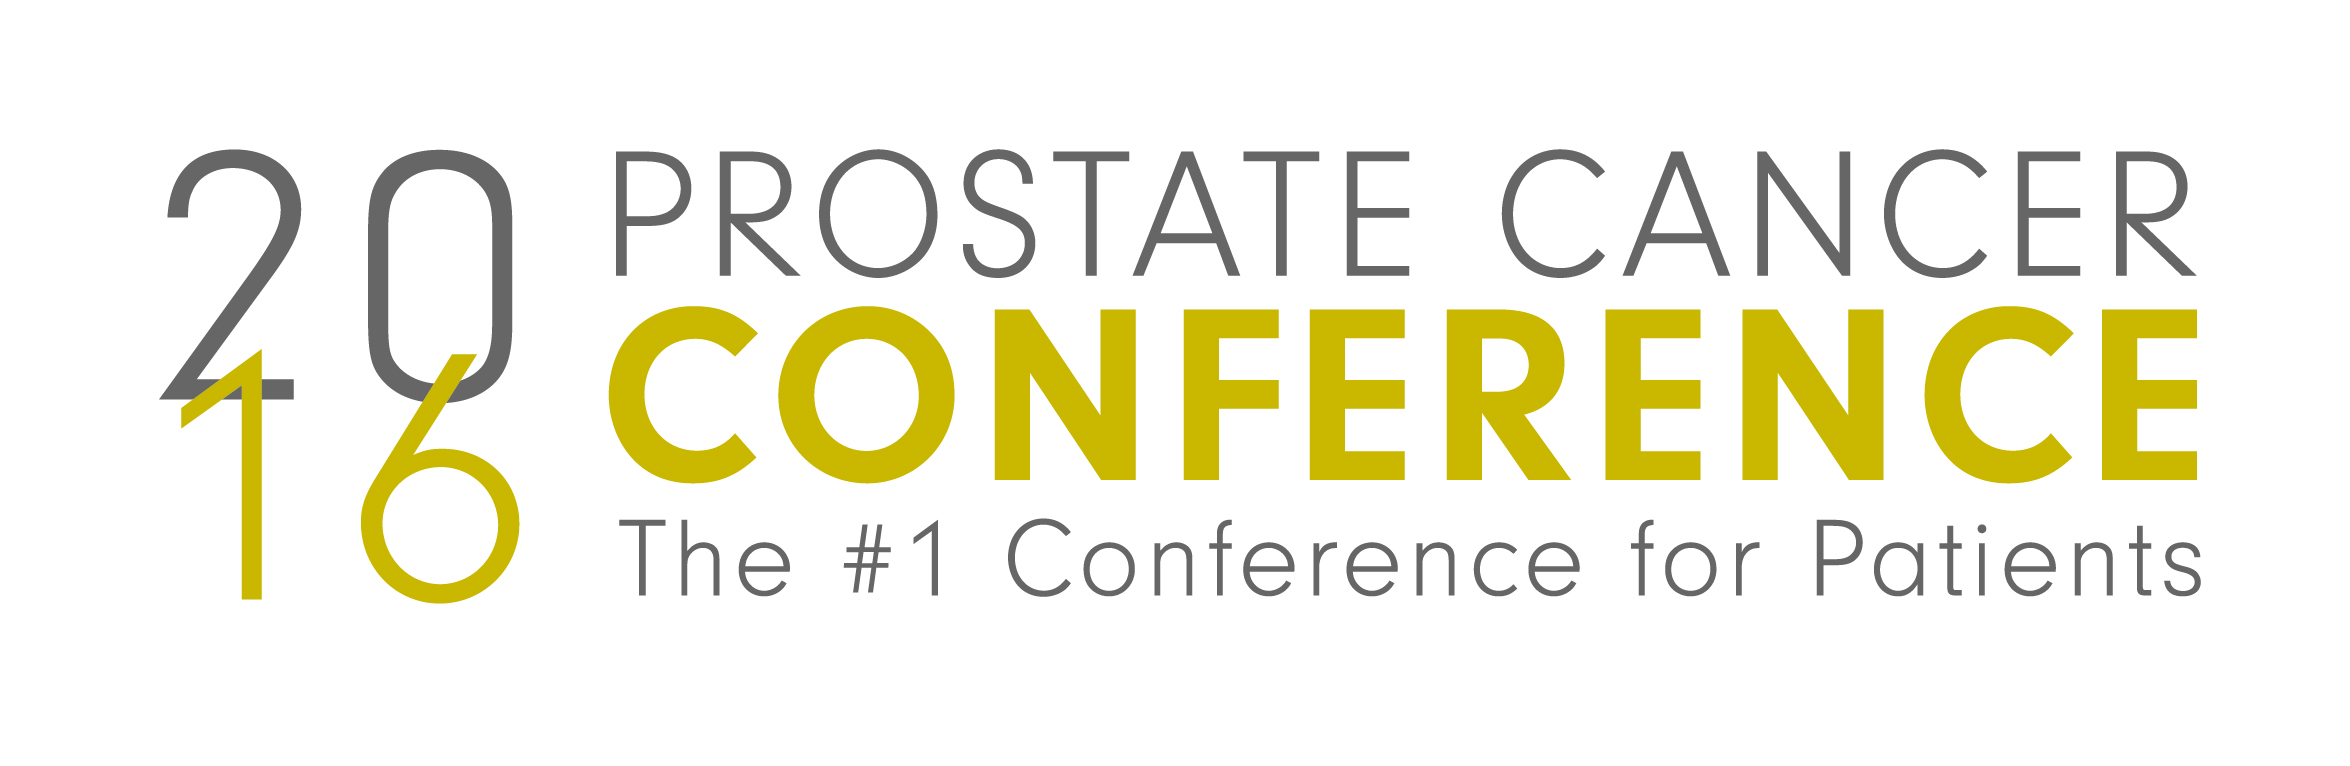 2016 Prostate Cancer Conference. New Buffalo Hotels On The Lake. San Diego Revenue And Recovery. Mortgage Loans For Police Officers. Master Card Secure Code Balance Transfer 0 Apr. College Of New Jersey Tuition. Engineering Website Templates. Google Web Hosting Domain Name. Jillian Michaels Detox Drink